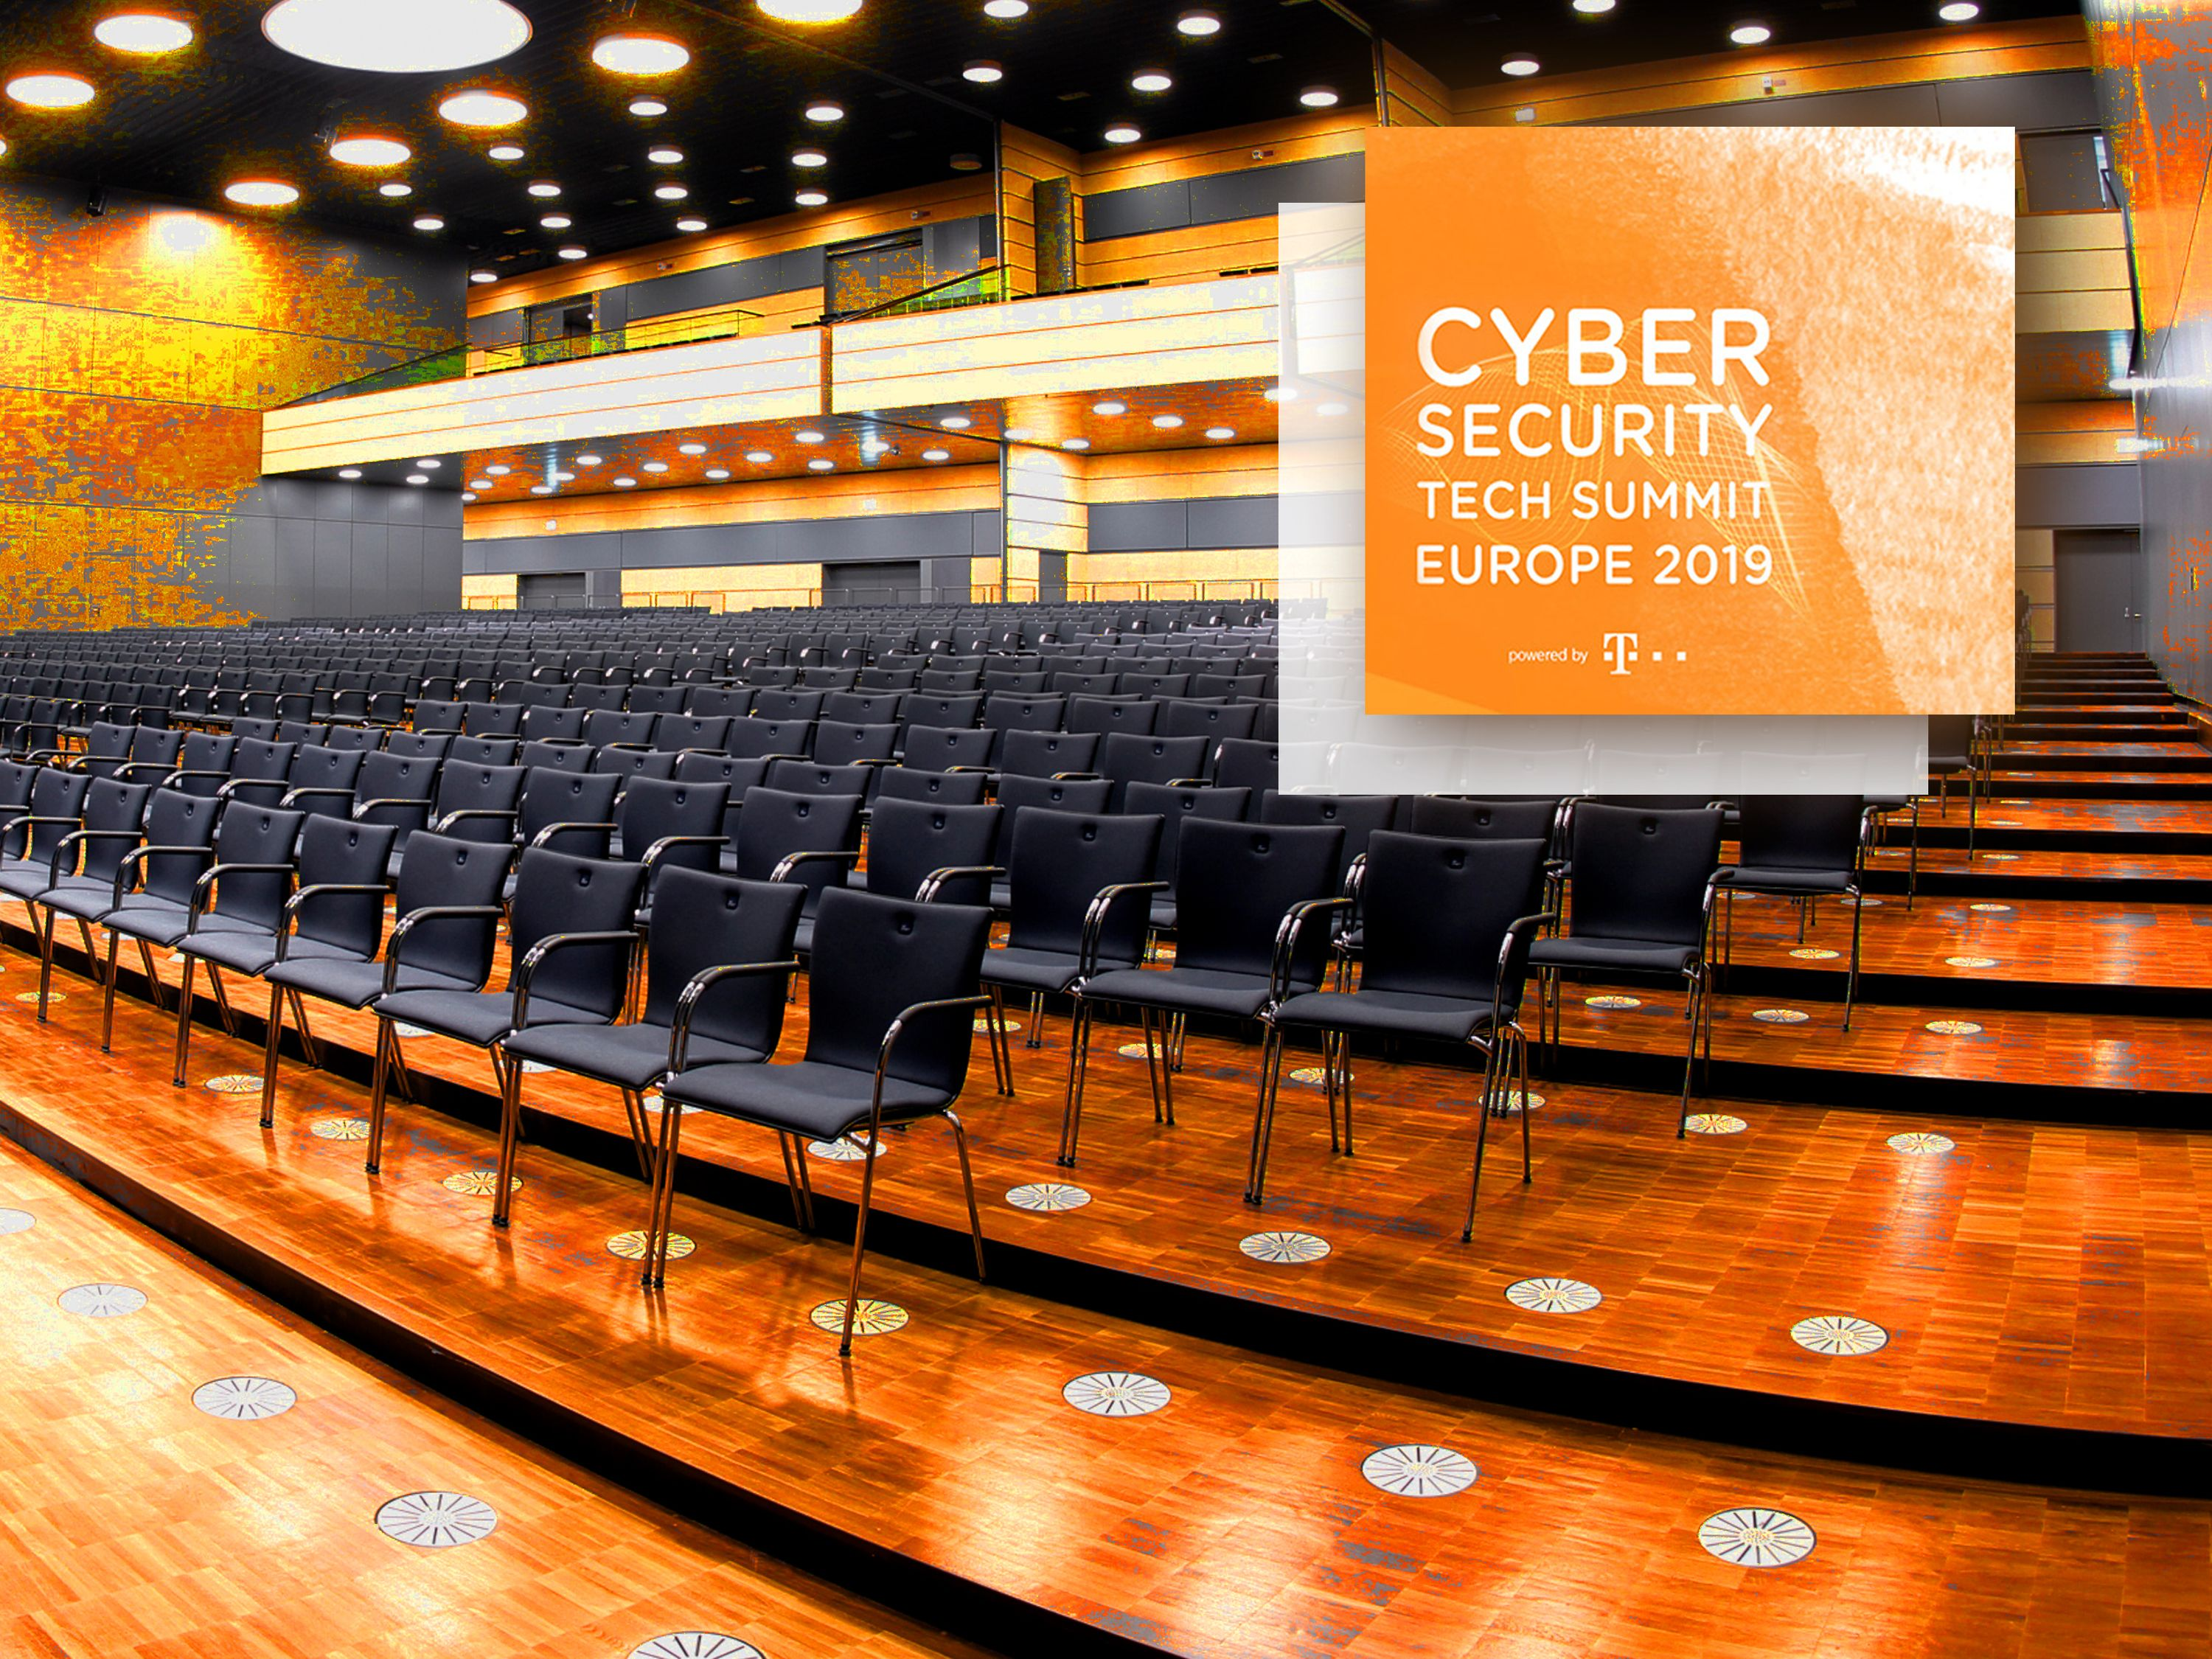 Cyber Security Tech Summit 2019